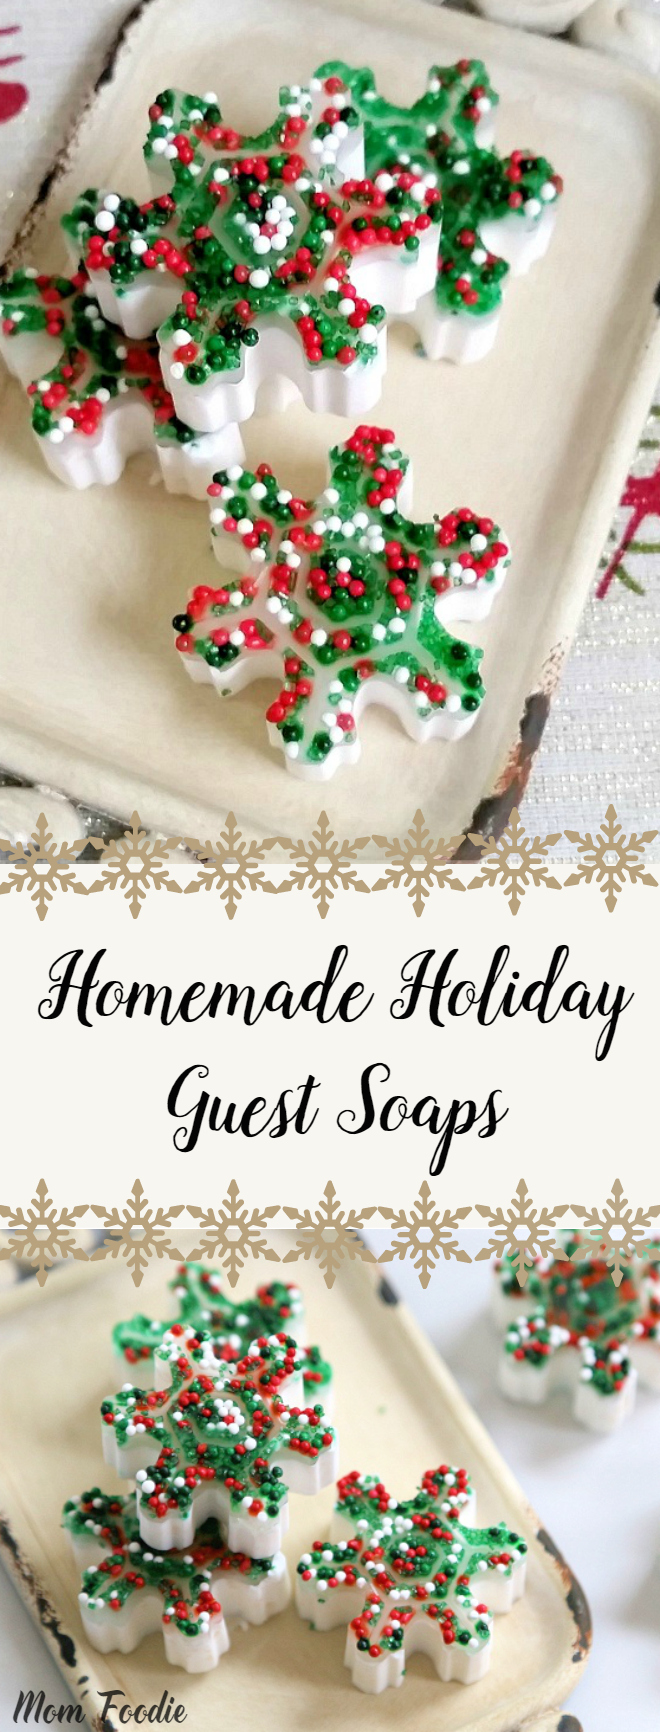 Homemade Holiday Guest Soaps - great decor or gift